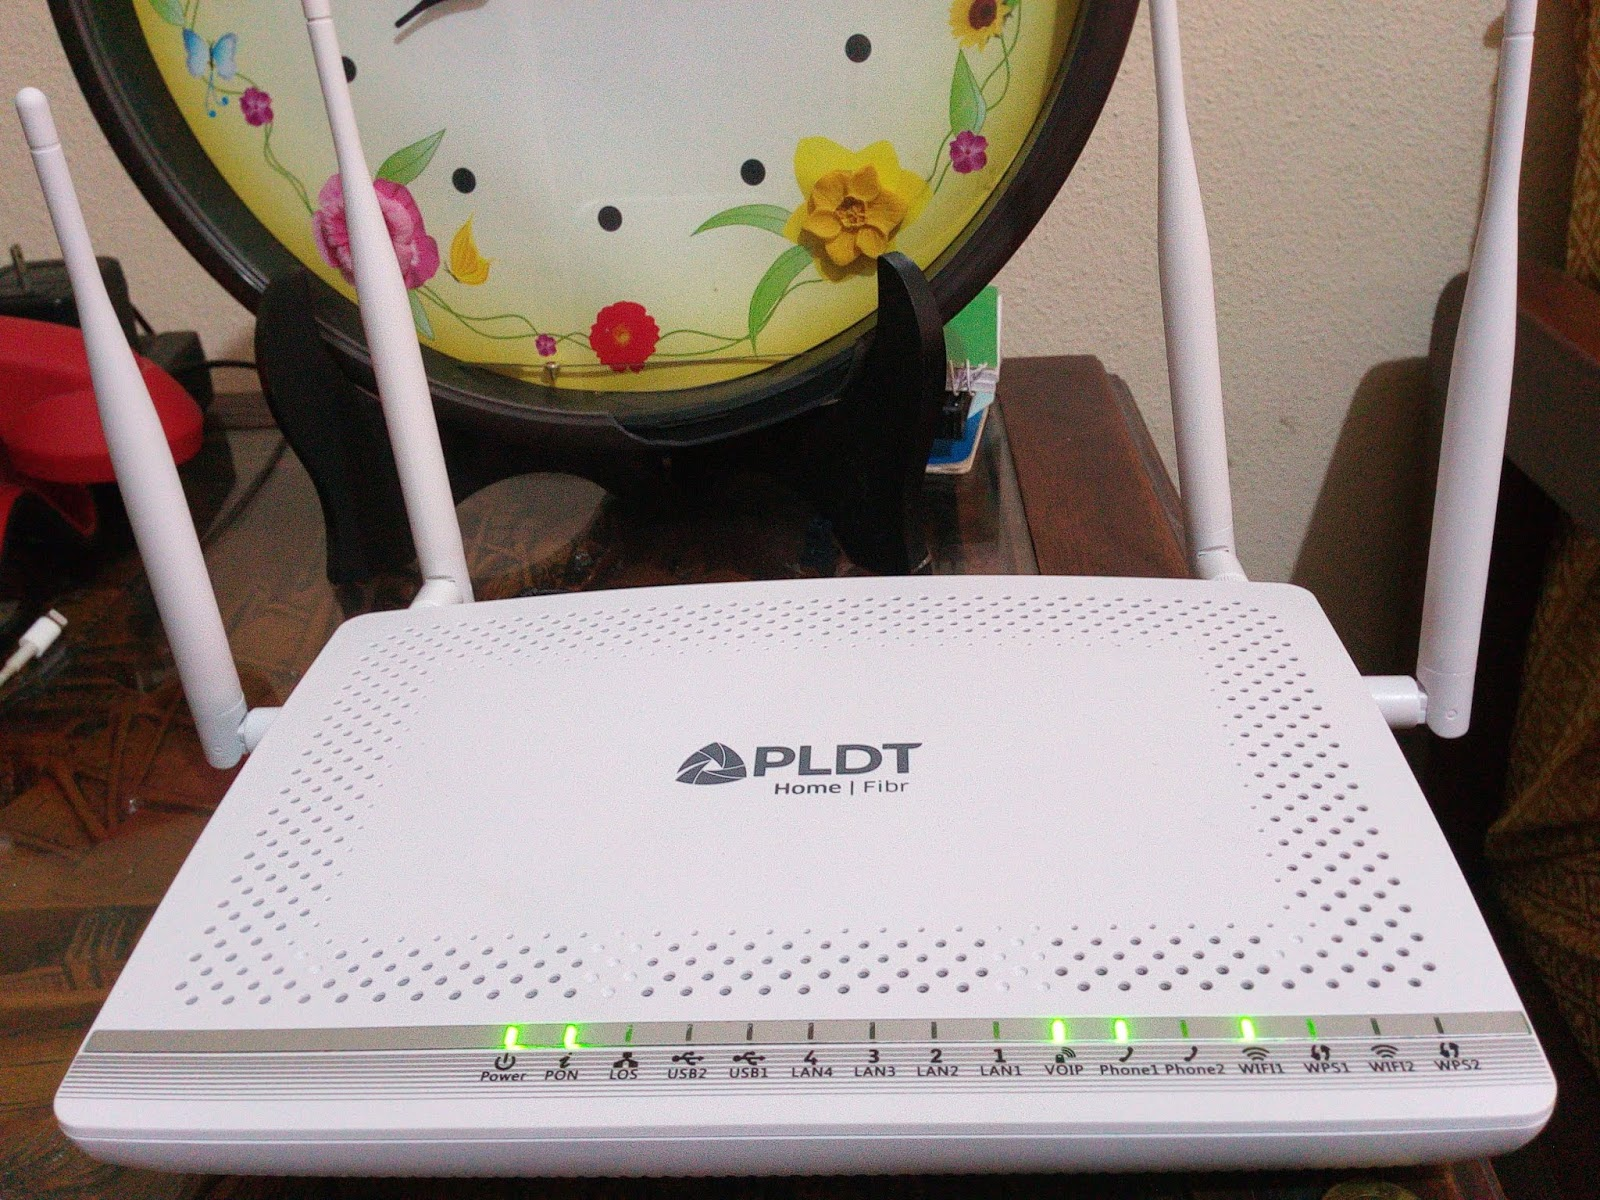 Dropped Like A Hatputito How To Migrate To Pldt Fibre From Dsl